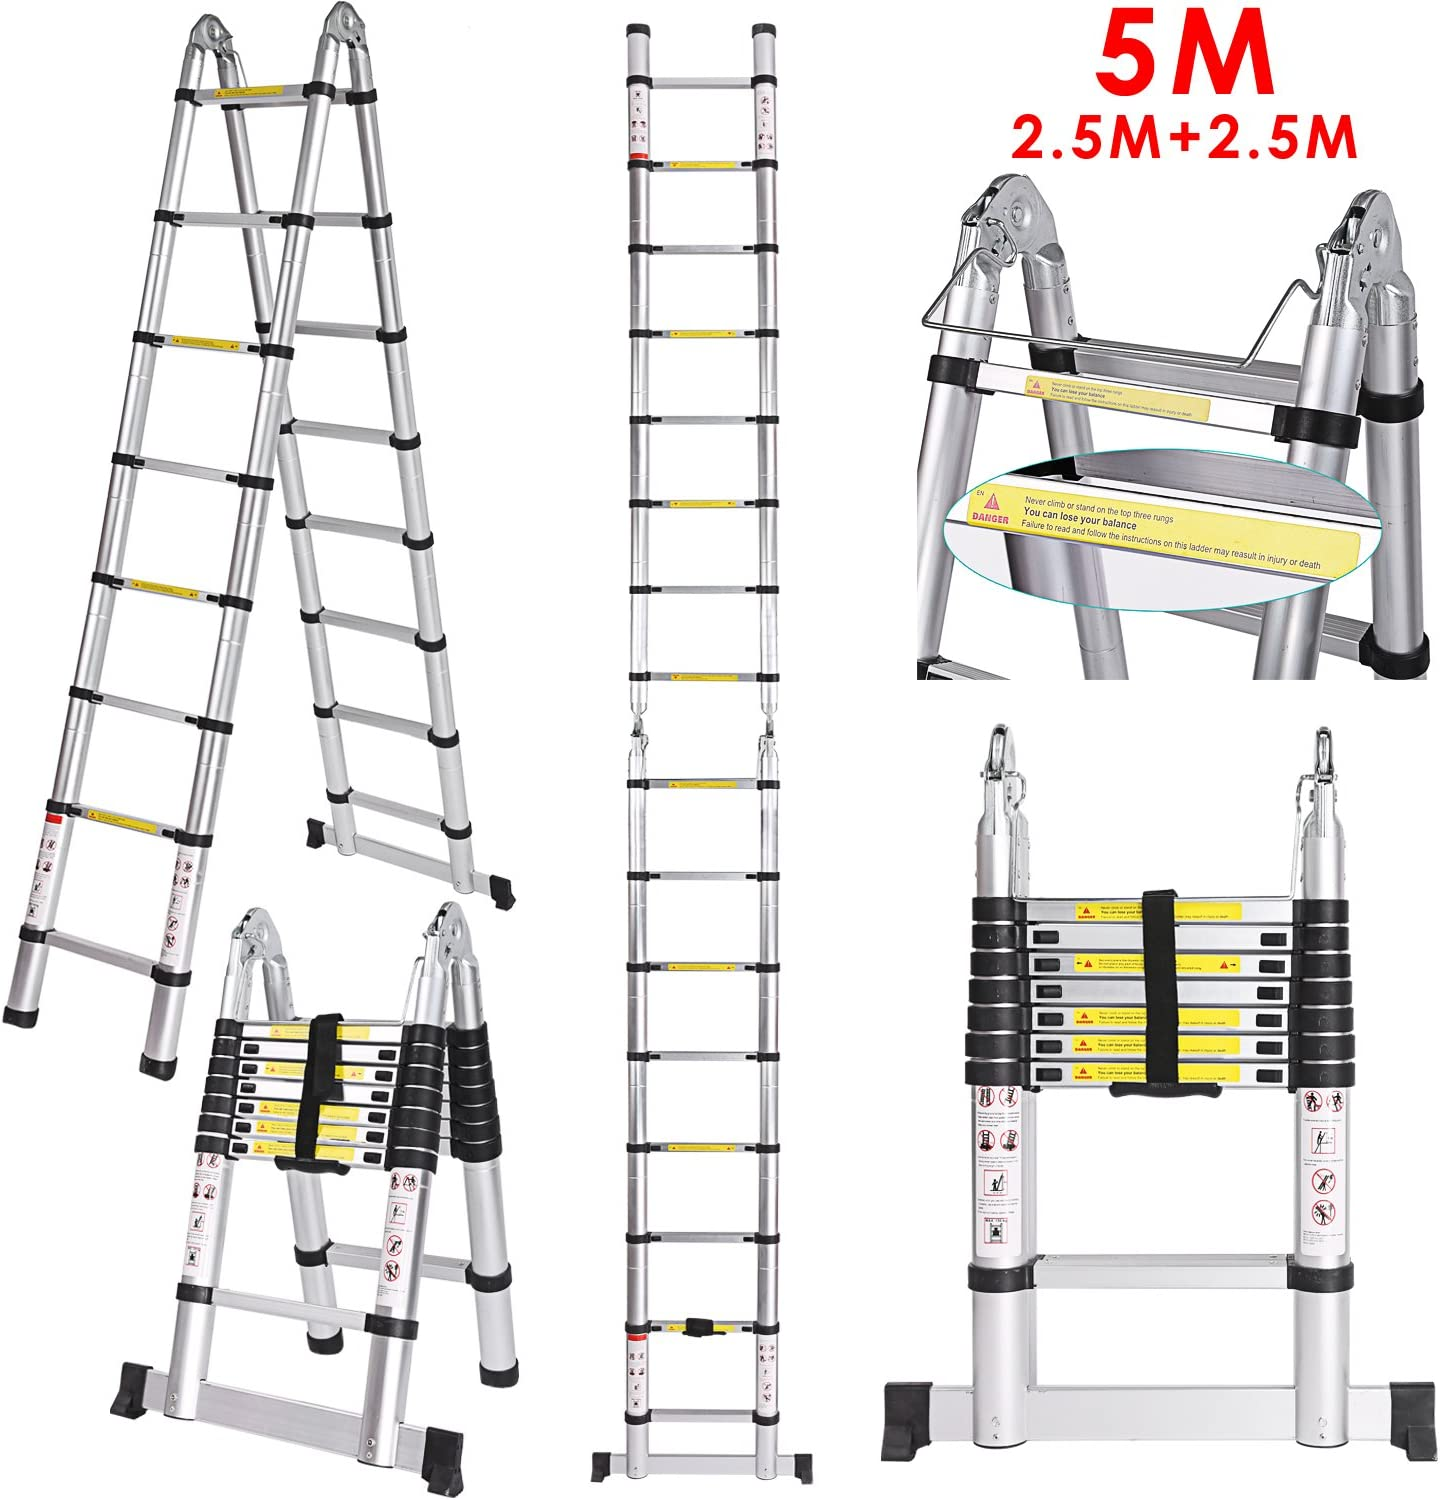 Rendio Aluminium Telescopic Ladder Telescopic Ladder//Extension Ladder//Multi-Purpose Ladder Made of High-Quality Aluminium//Telescopic Design 150 kg Load Capacity 8 x 8 Rungs